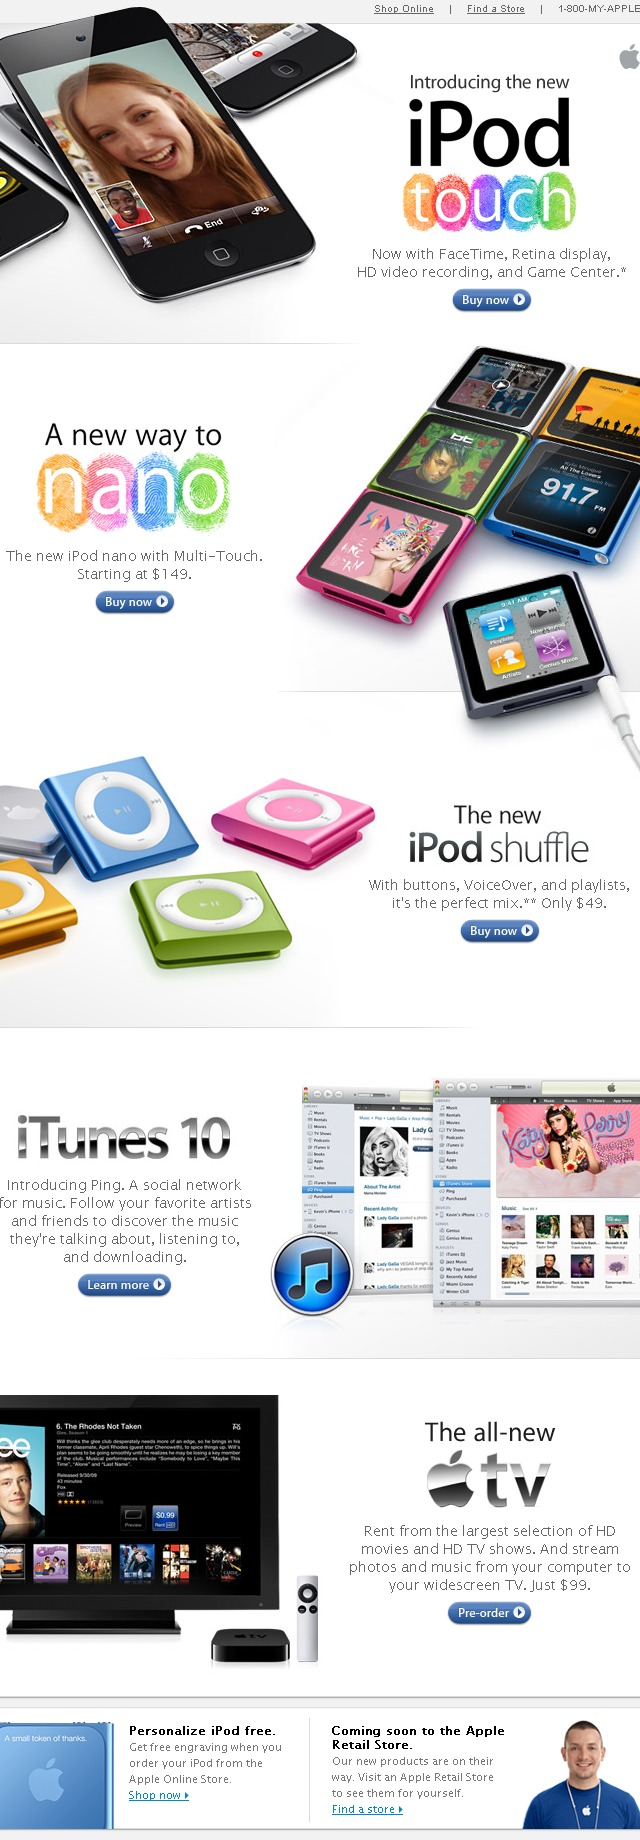 email Apple nuevos iPods iTunes 10 TV